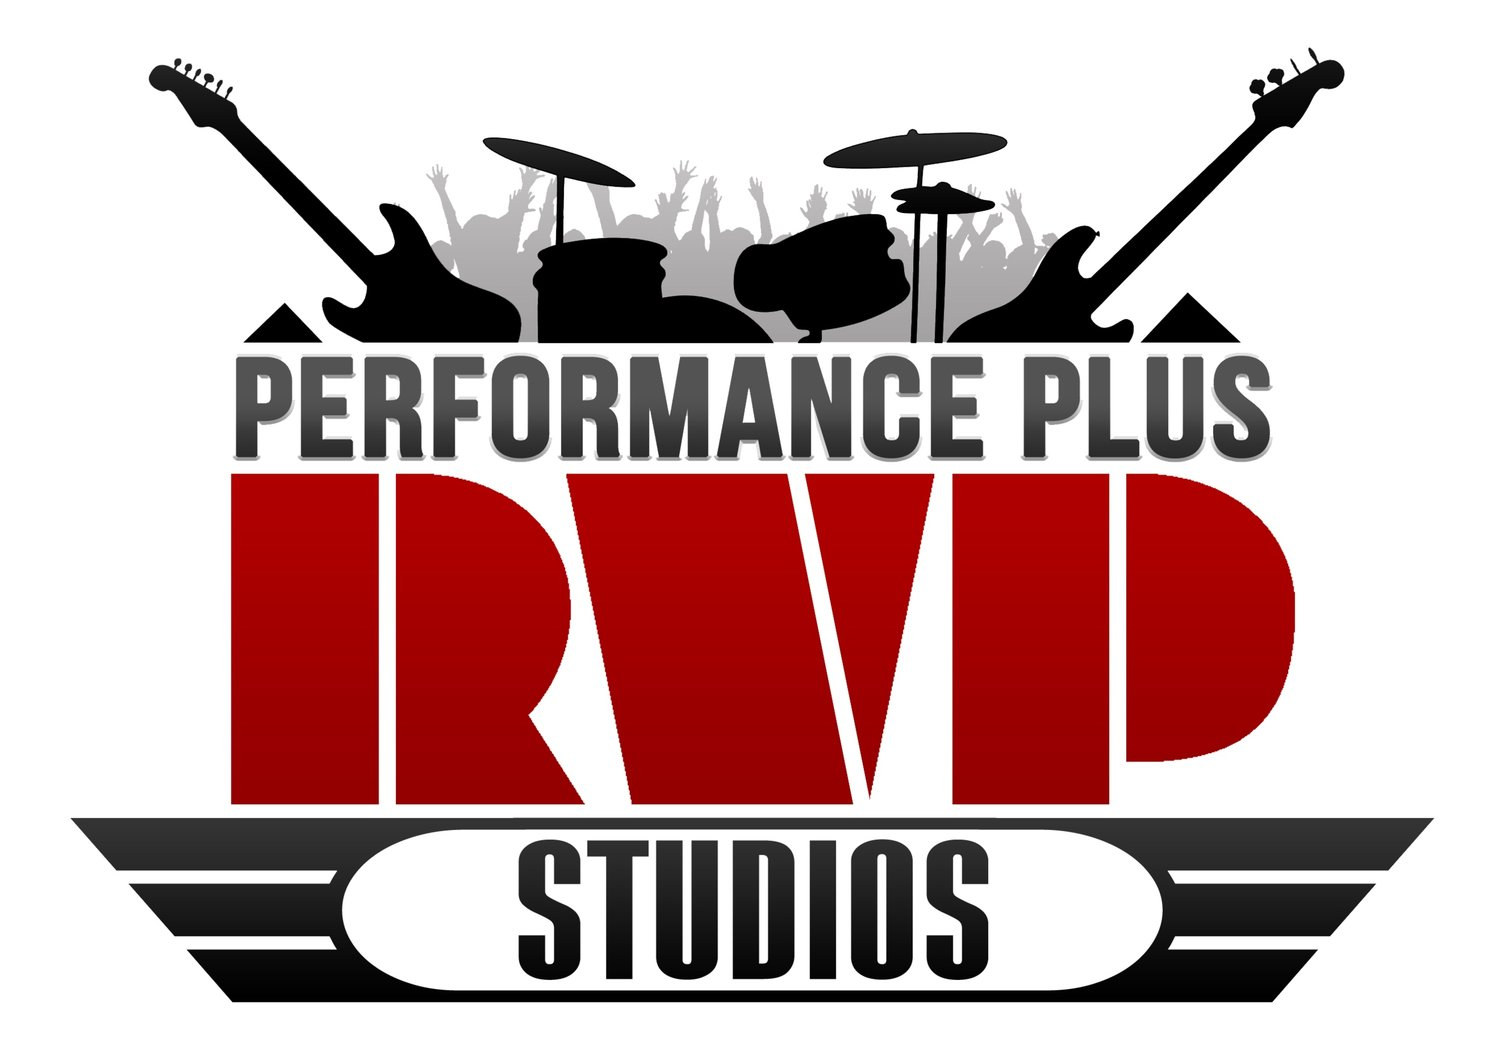 PERFORMANCE PLUS  /  RVP STUDIOS - MUSIC LESSONS, REHEARSAL SPACES, RECORDING STUDIO, ACTING CLASSES, CONCERT VENUE